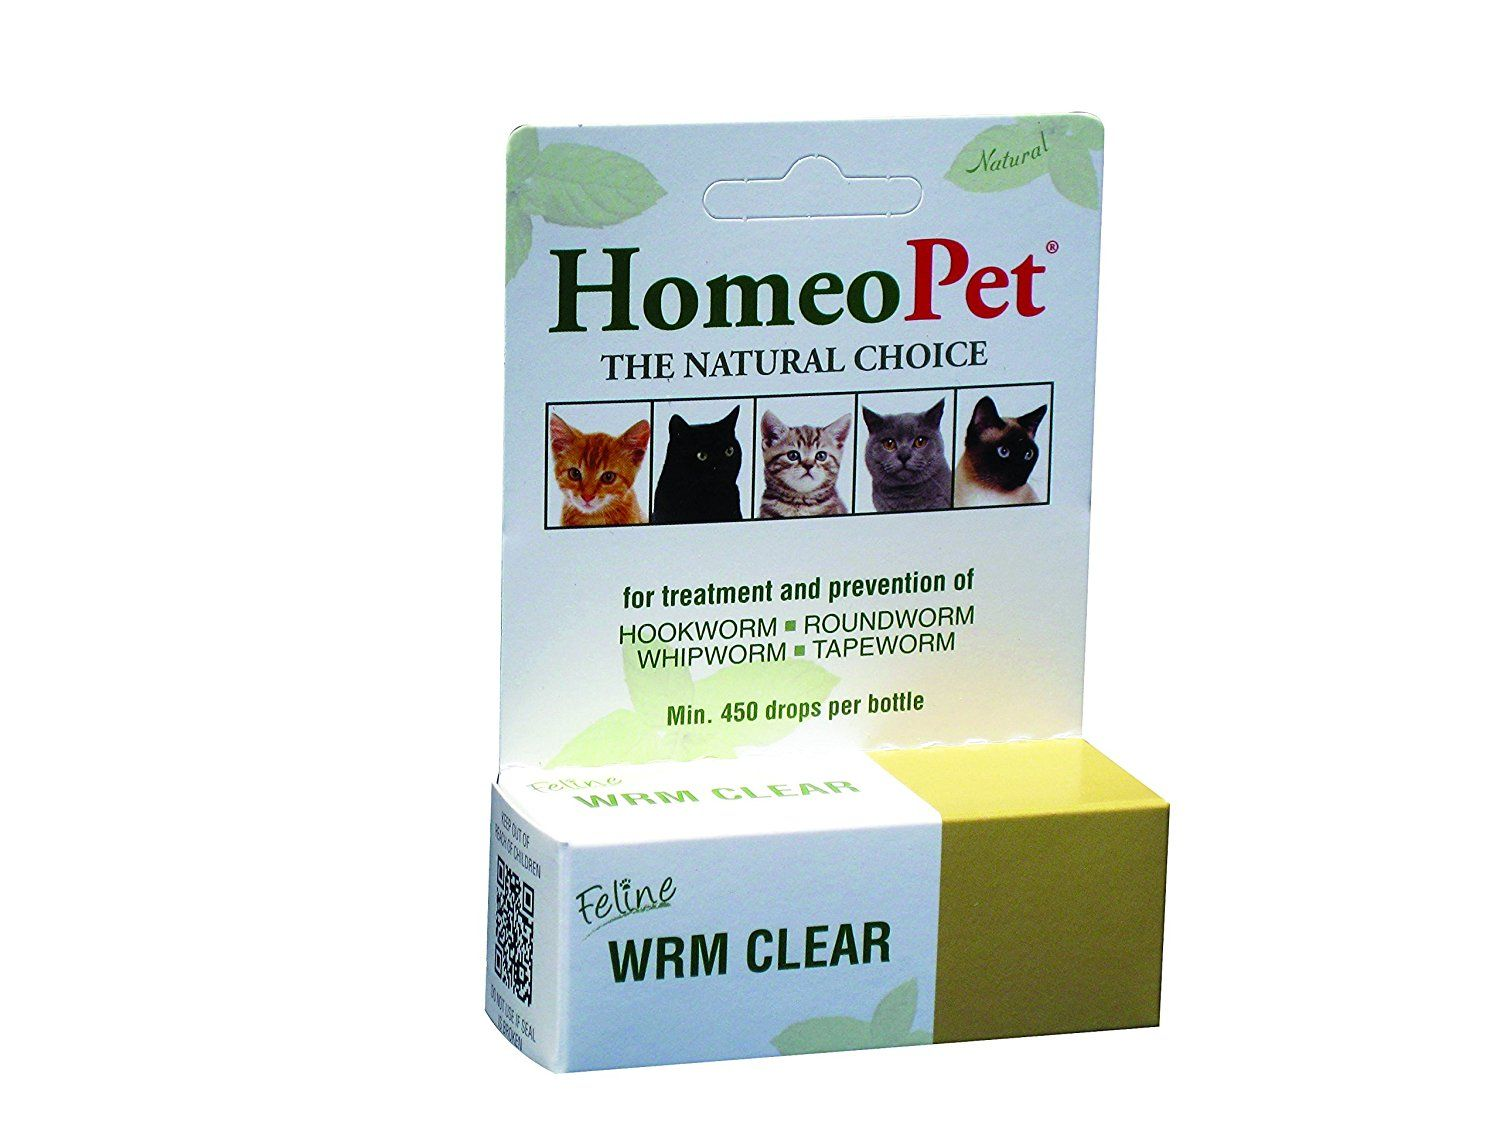 Homeocat Wrm Clear For More Information Visit Now Cat Health And Supplies Cat Medicine Cat Dewormer Cat Health